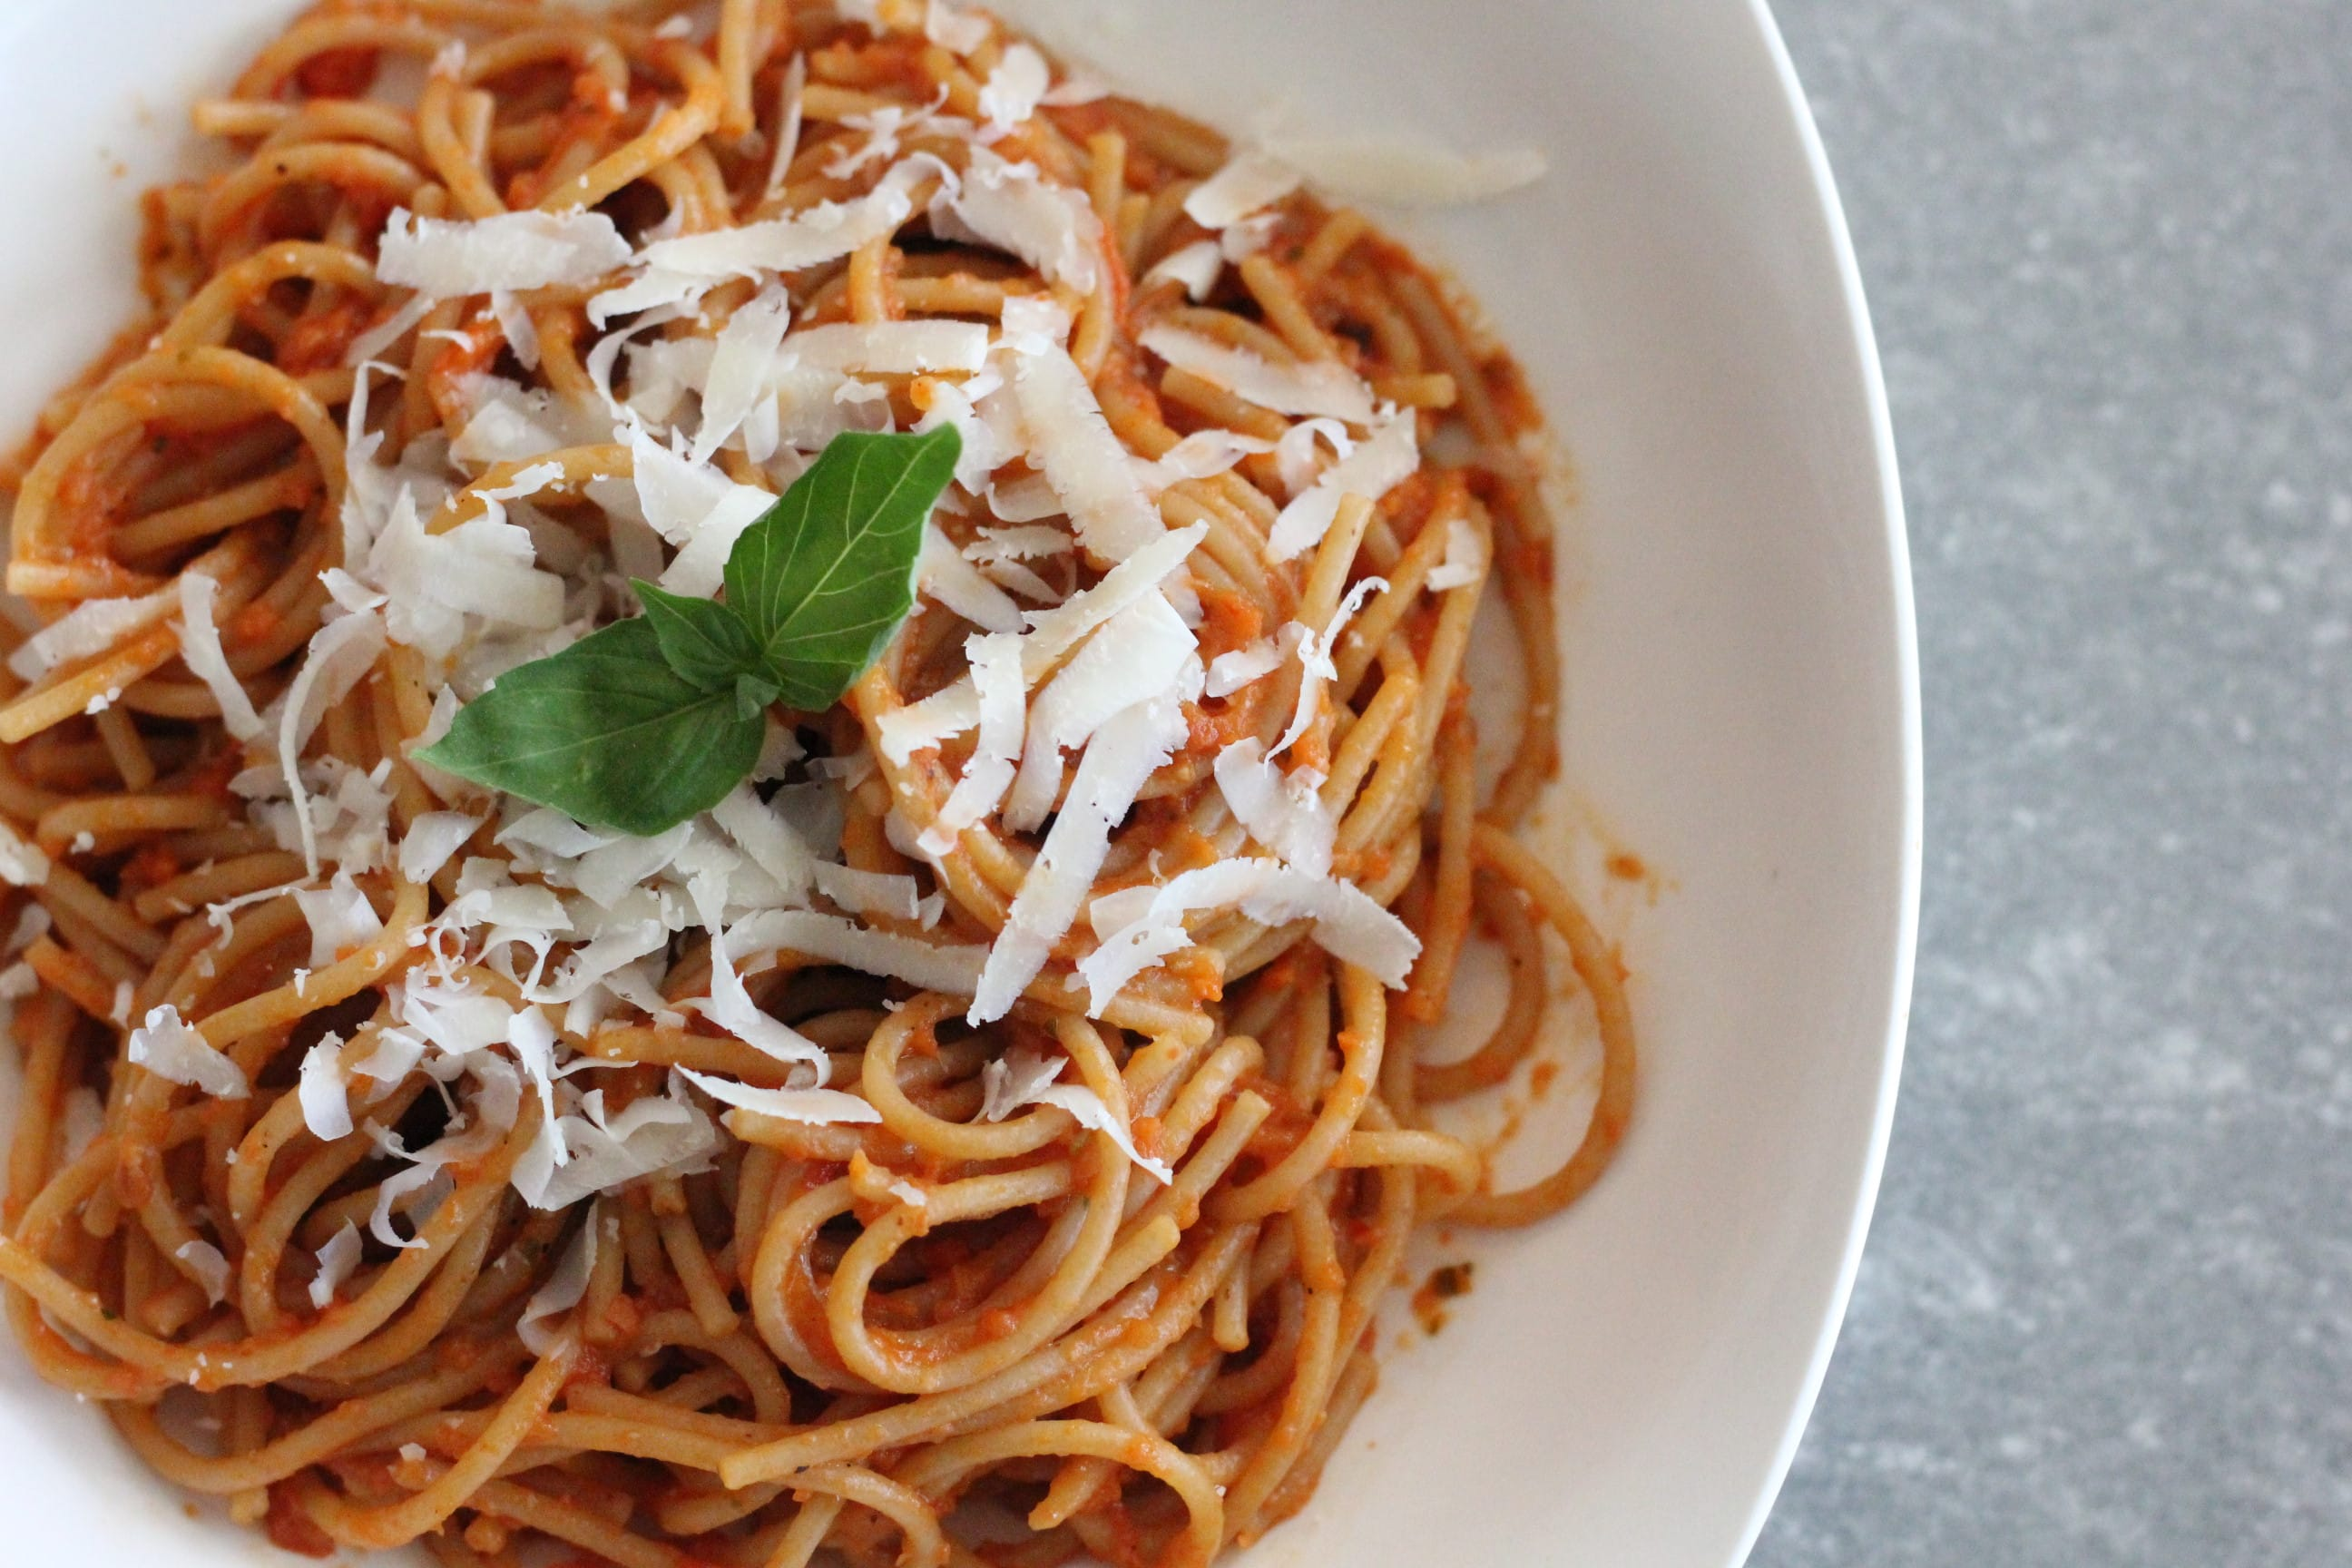 bowl of spaghetti noodles with roasted tomato sauce and topped with shredded cheese.